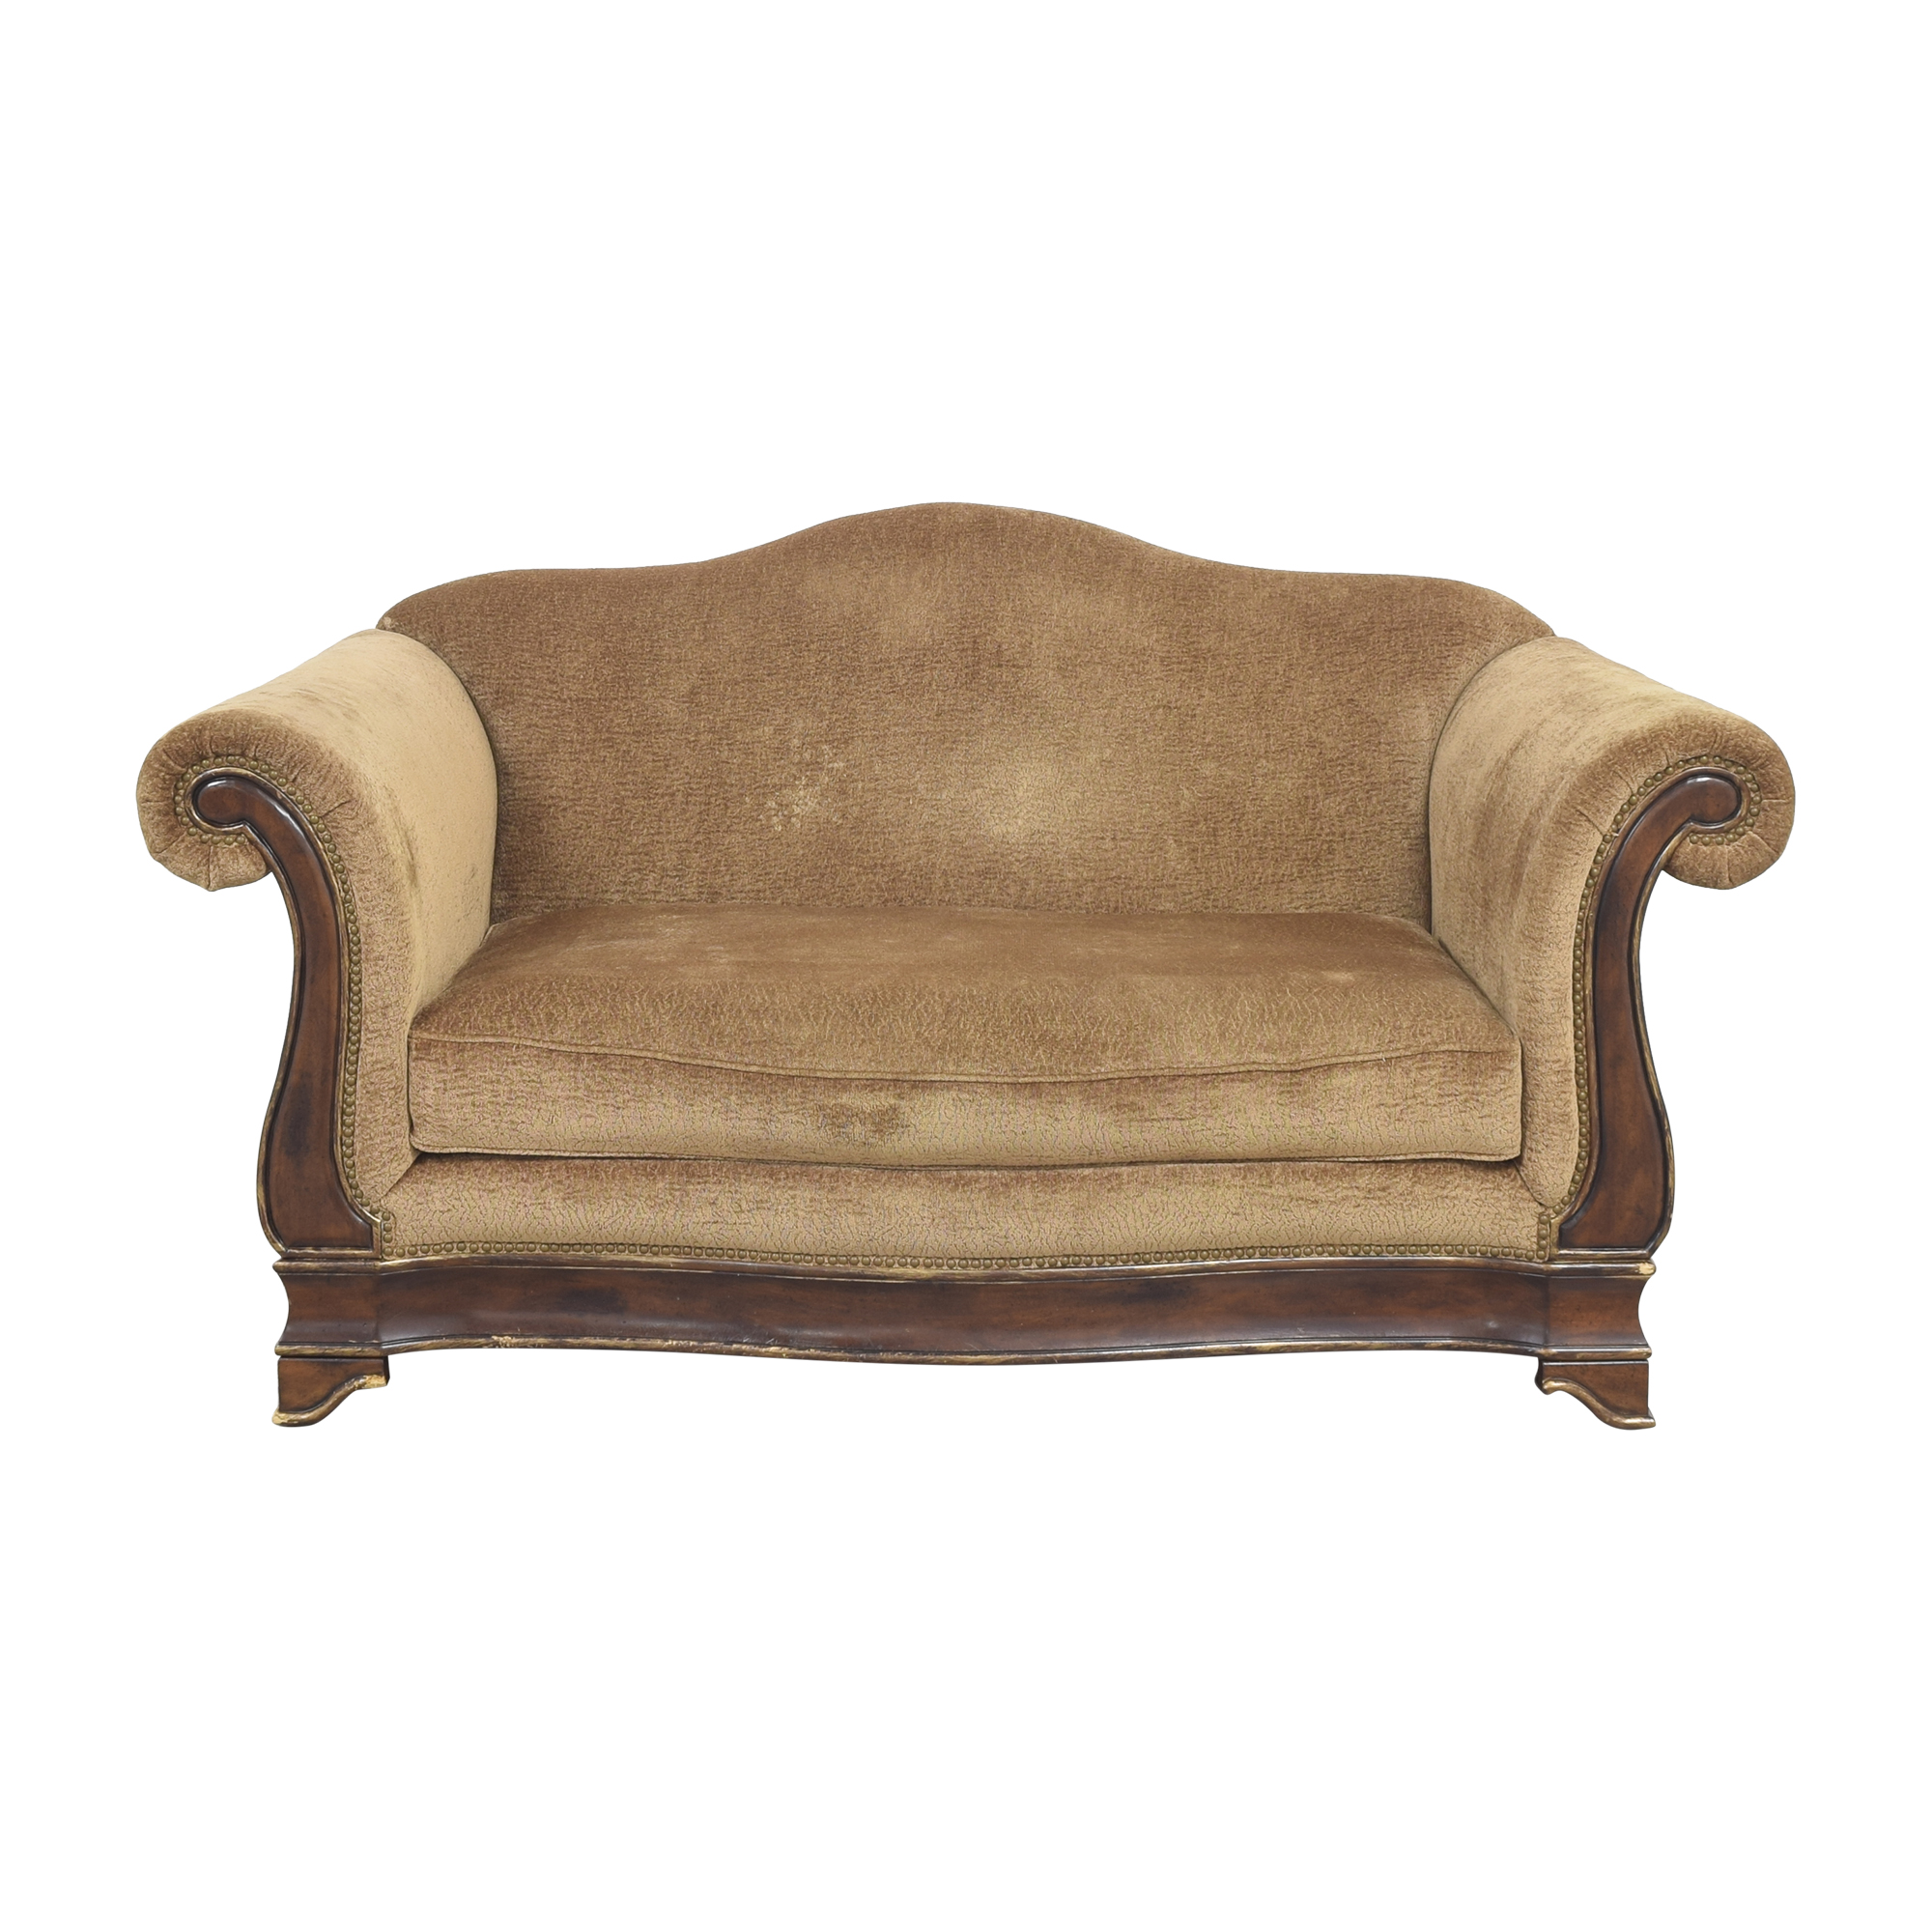 Markor International Markor International Camelback Sofa